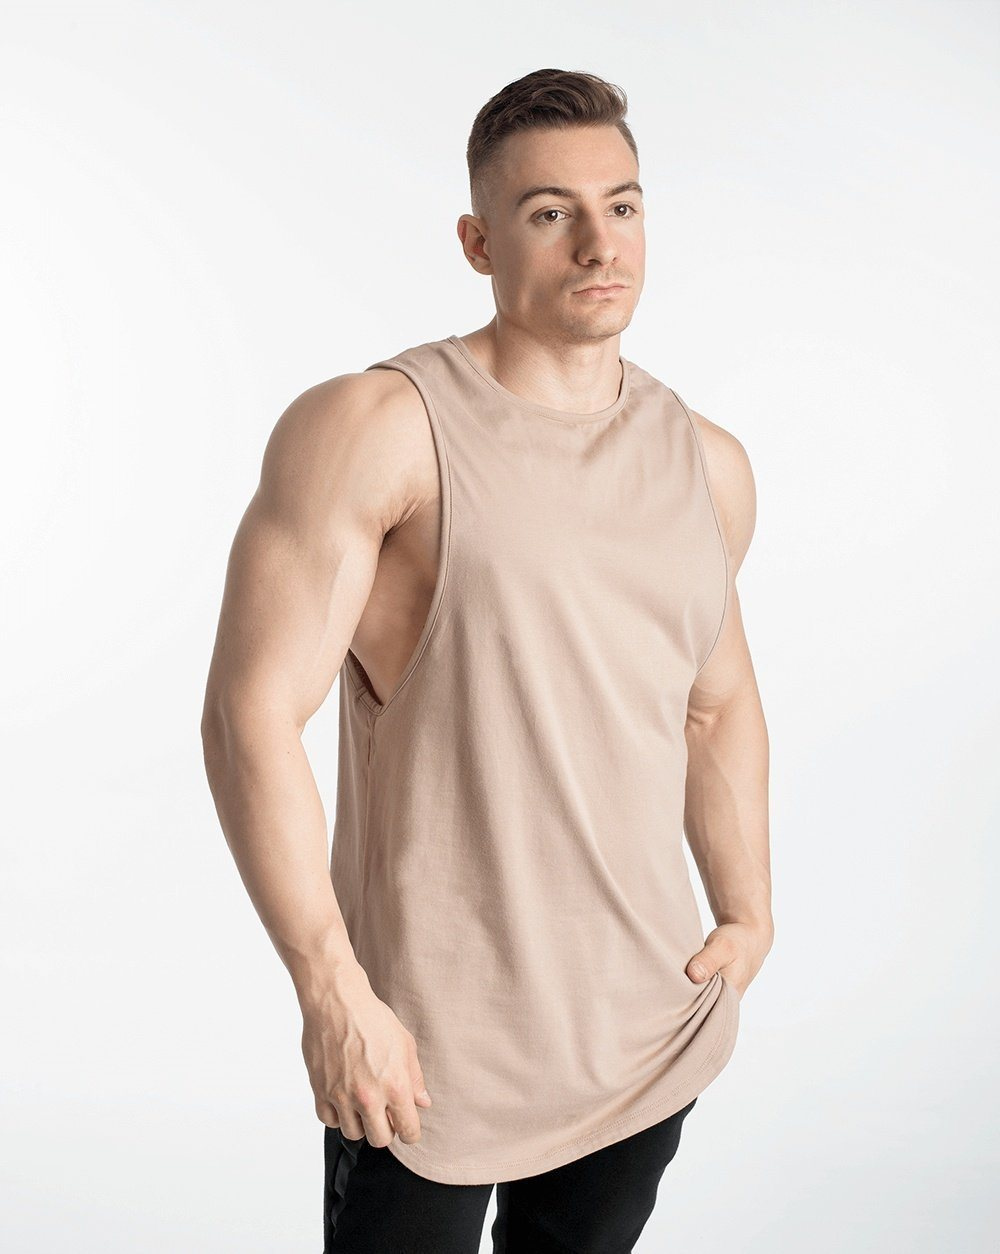 Biink Cut-Off Tank - Taupe